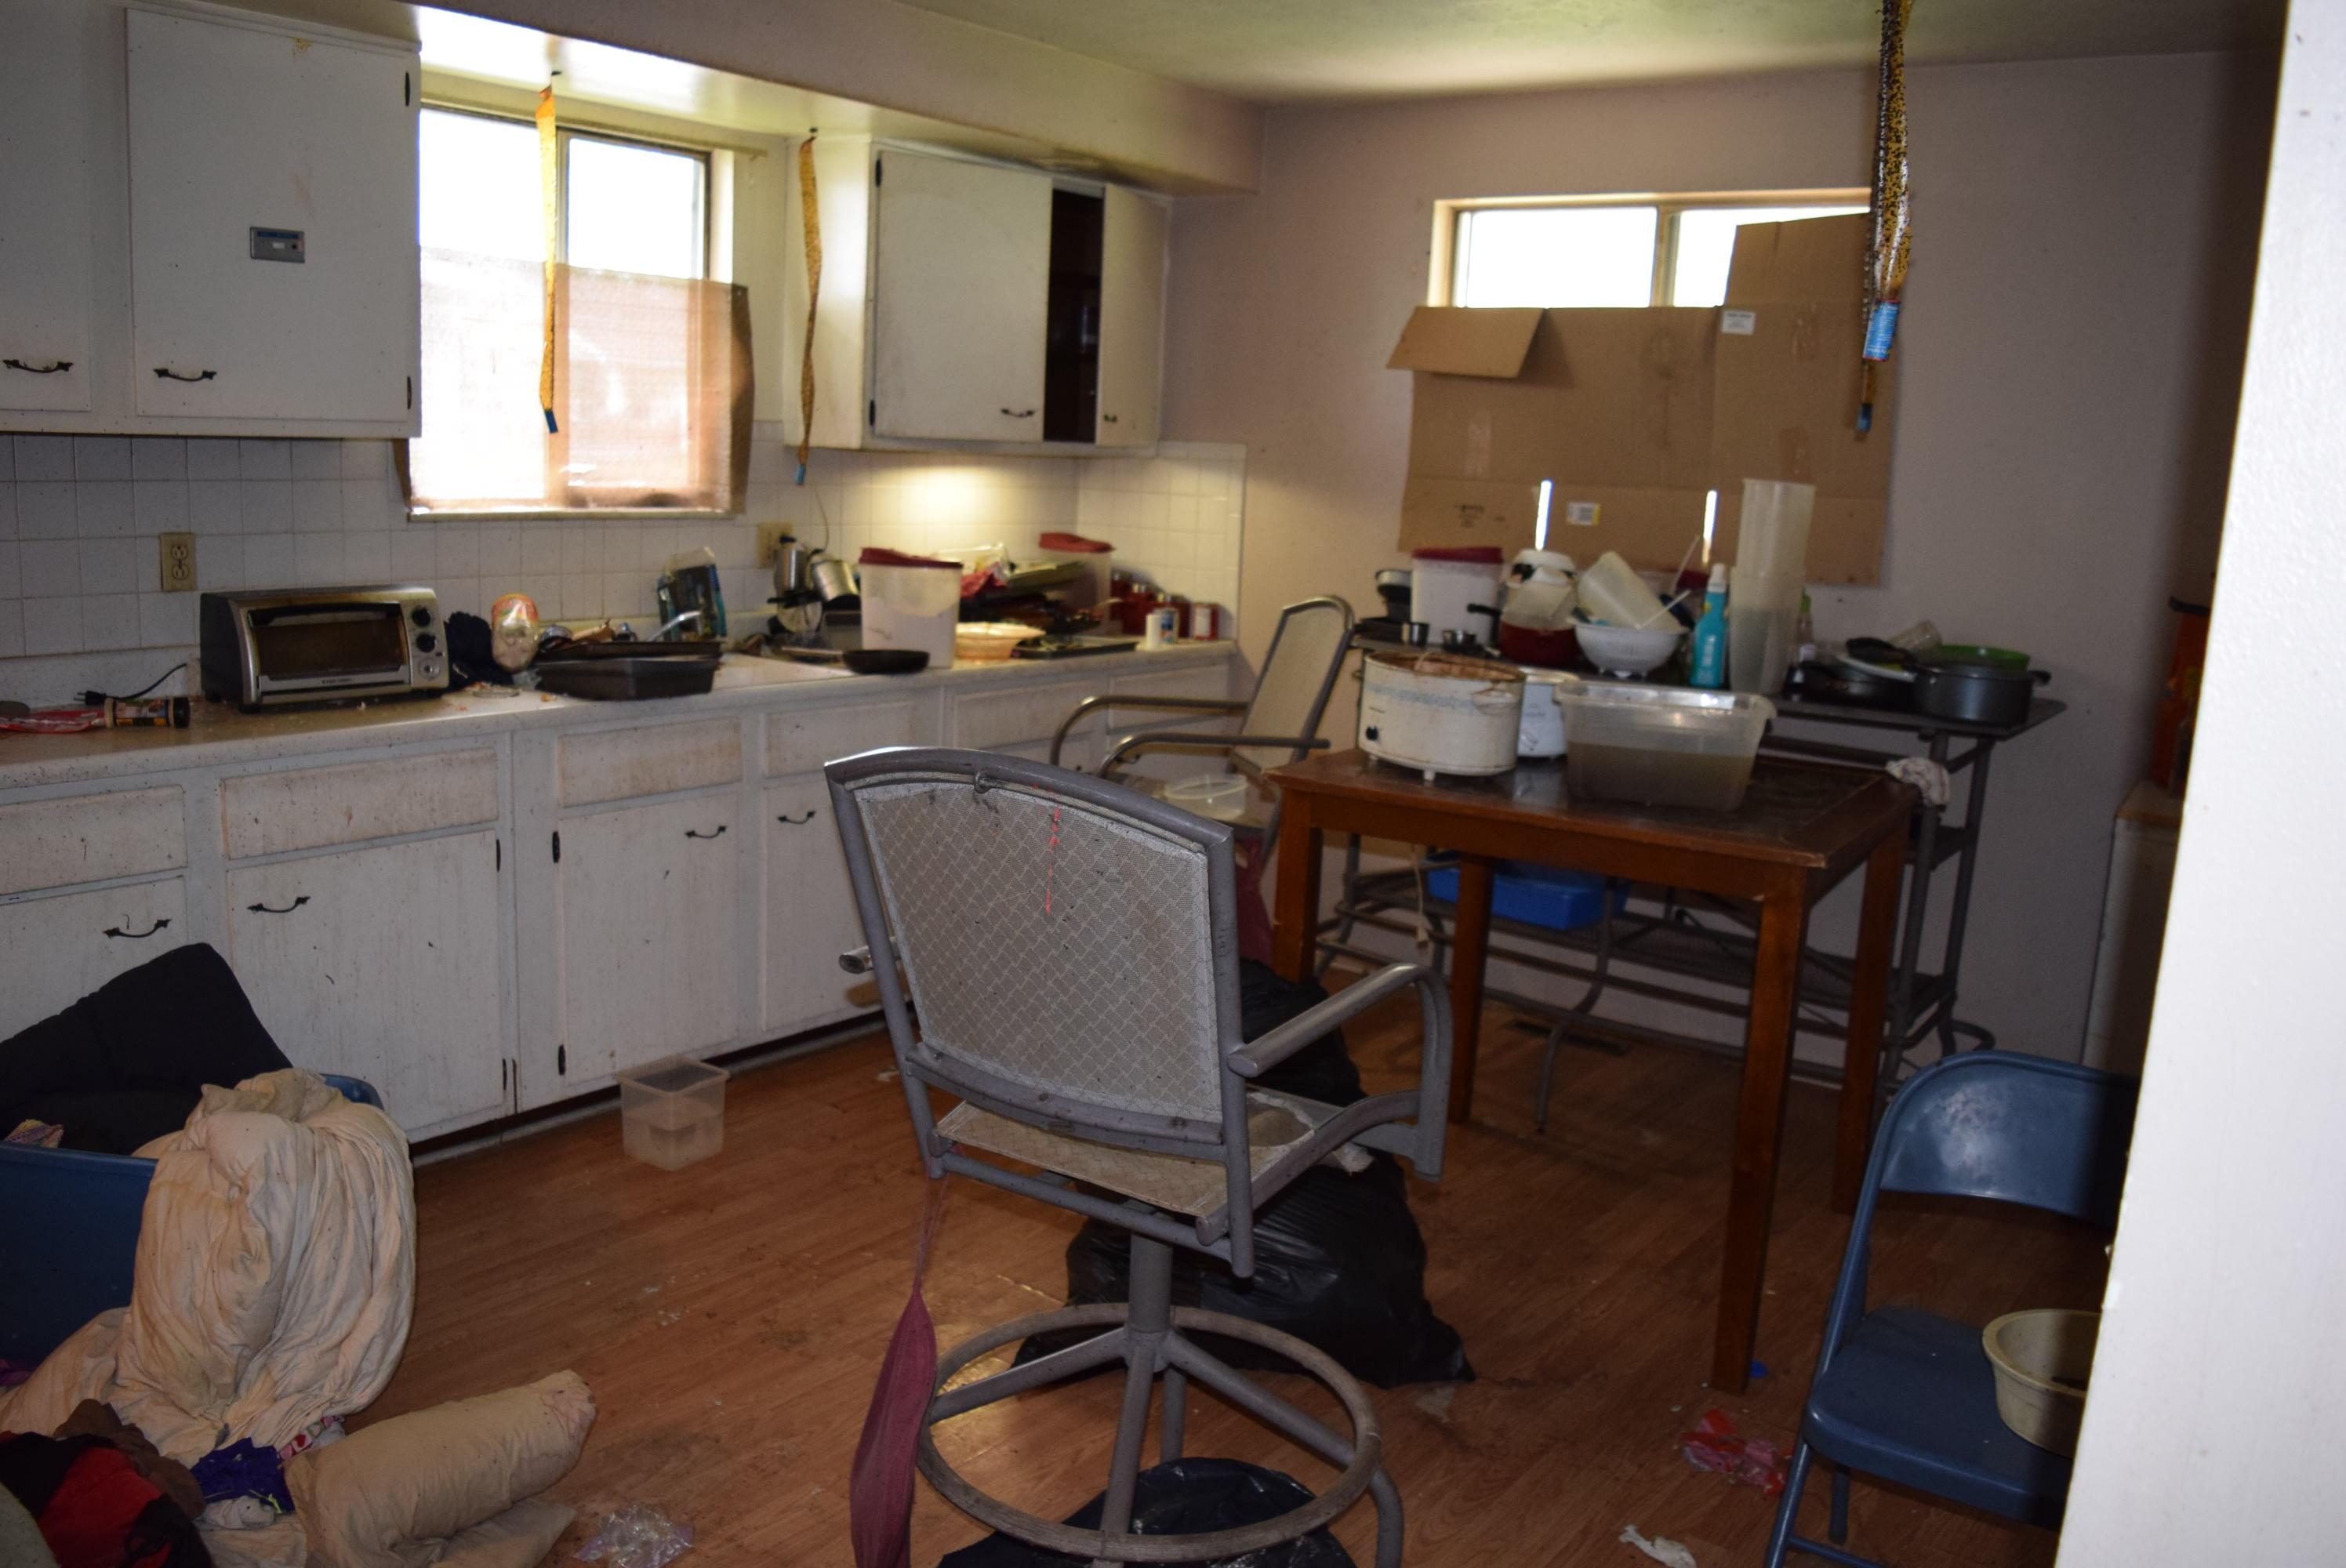 Springfield Police release photos inside home where children were removed. (Photo: Springfield Police)